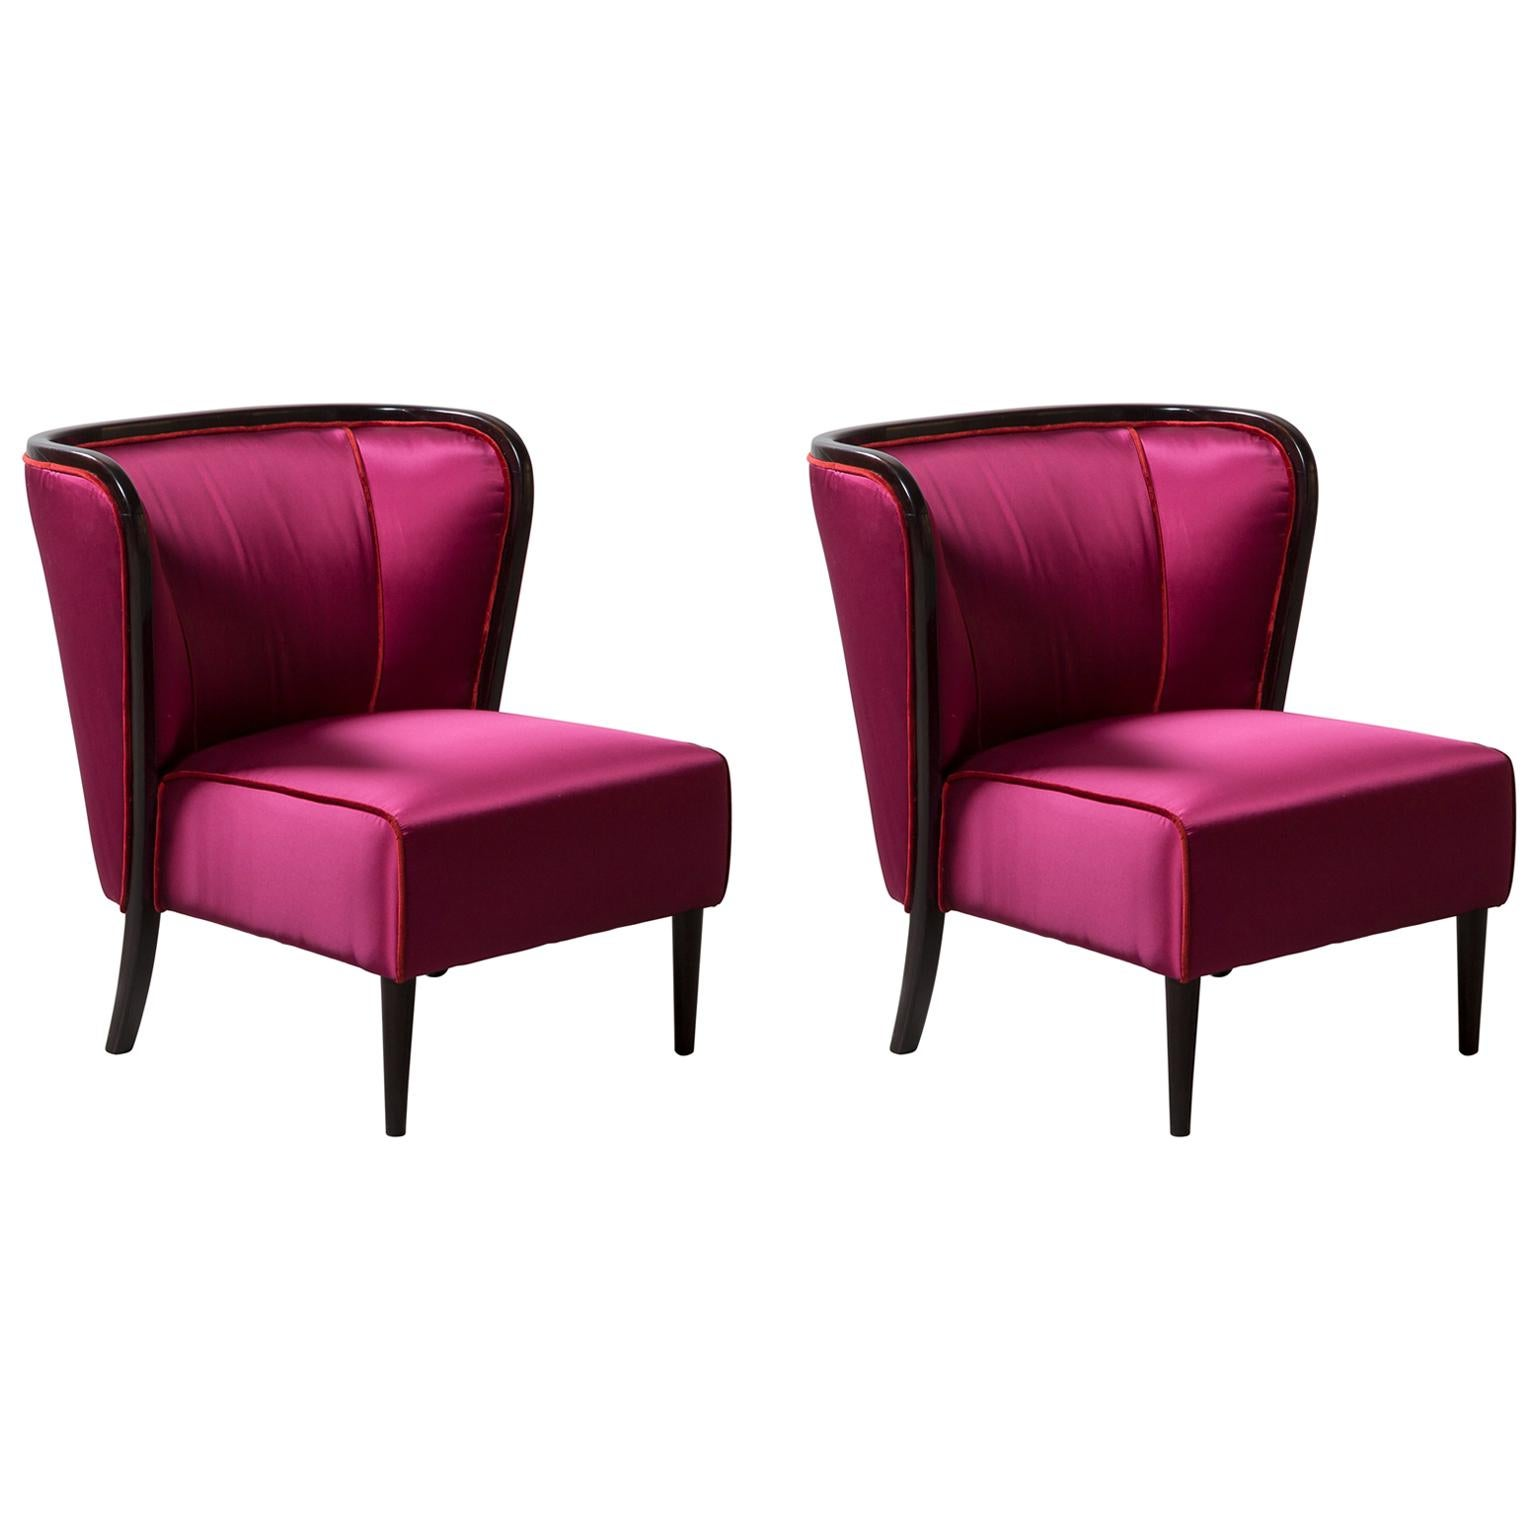 Pair of Armchairs by Guglielmo Ulrich